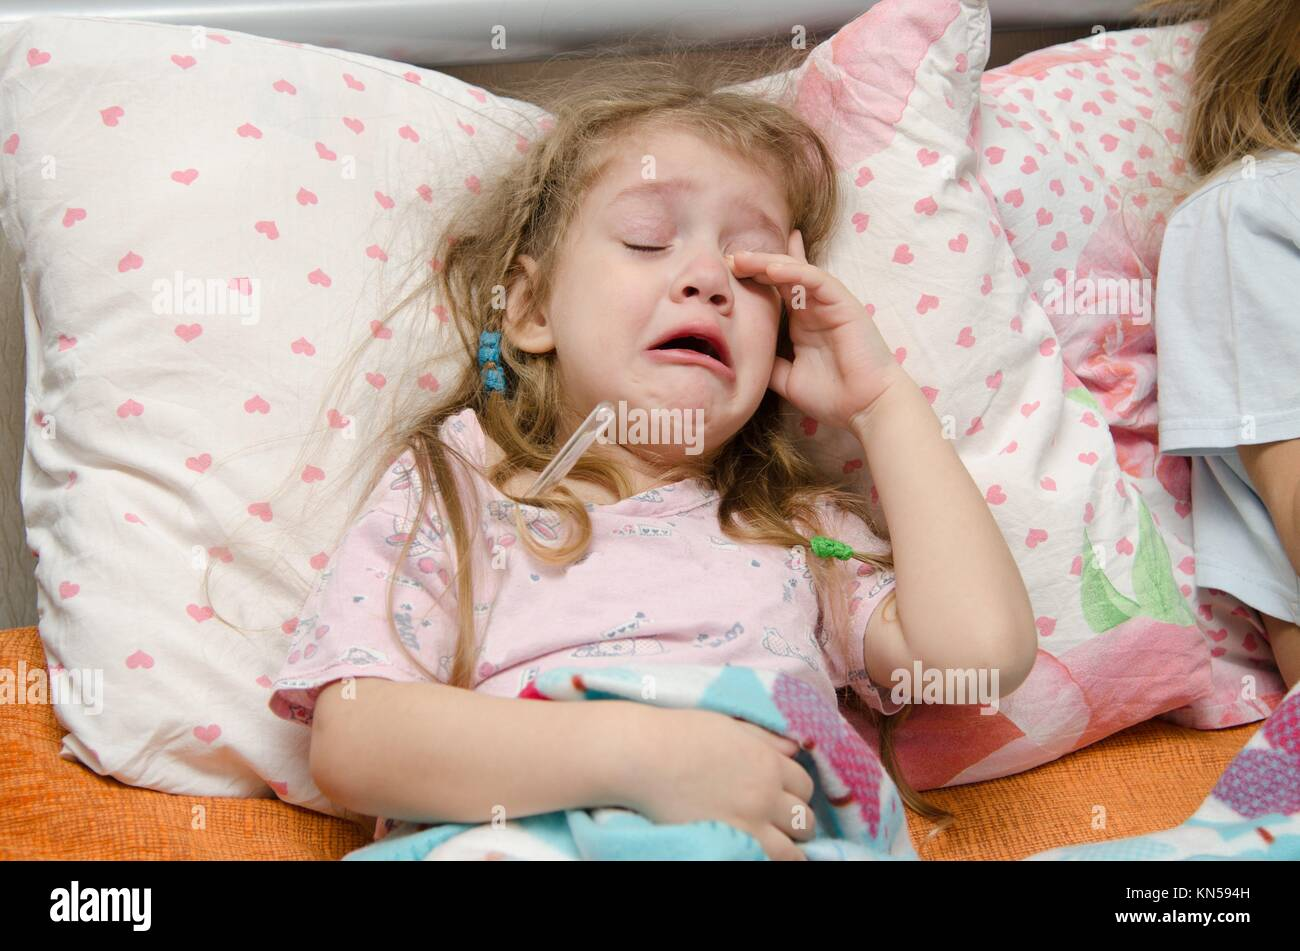 The three-year diseased girl lying in bed, Meria temperature thermometer, in a bad mood. - Stock Image